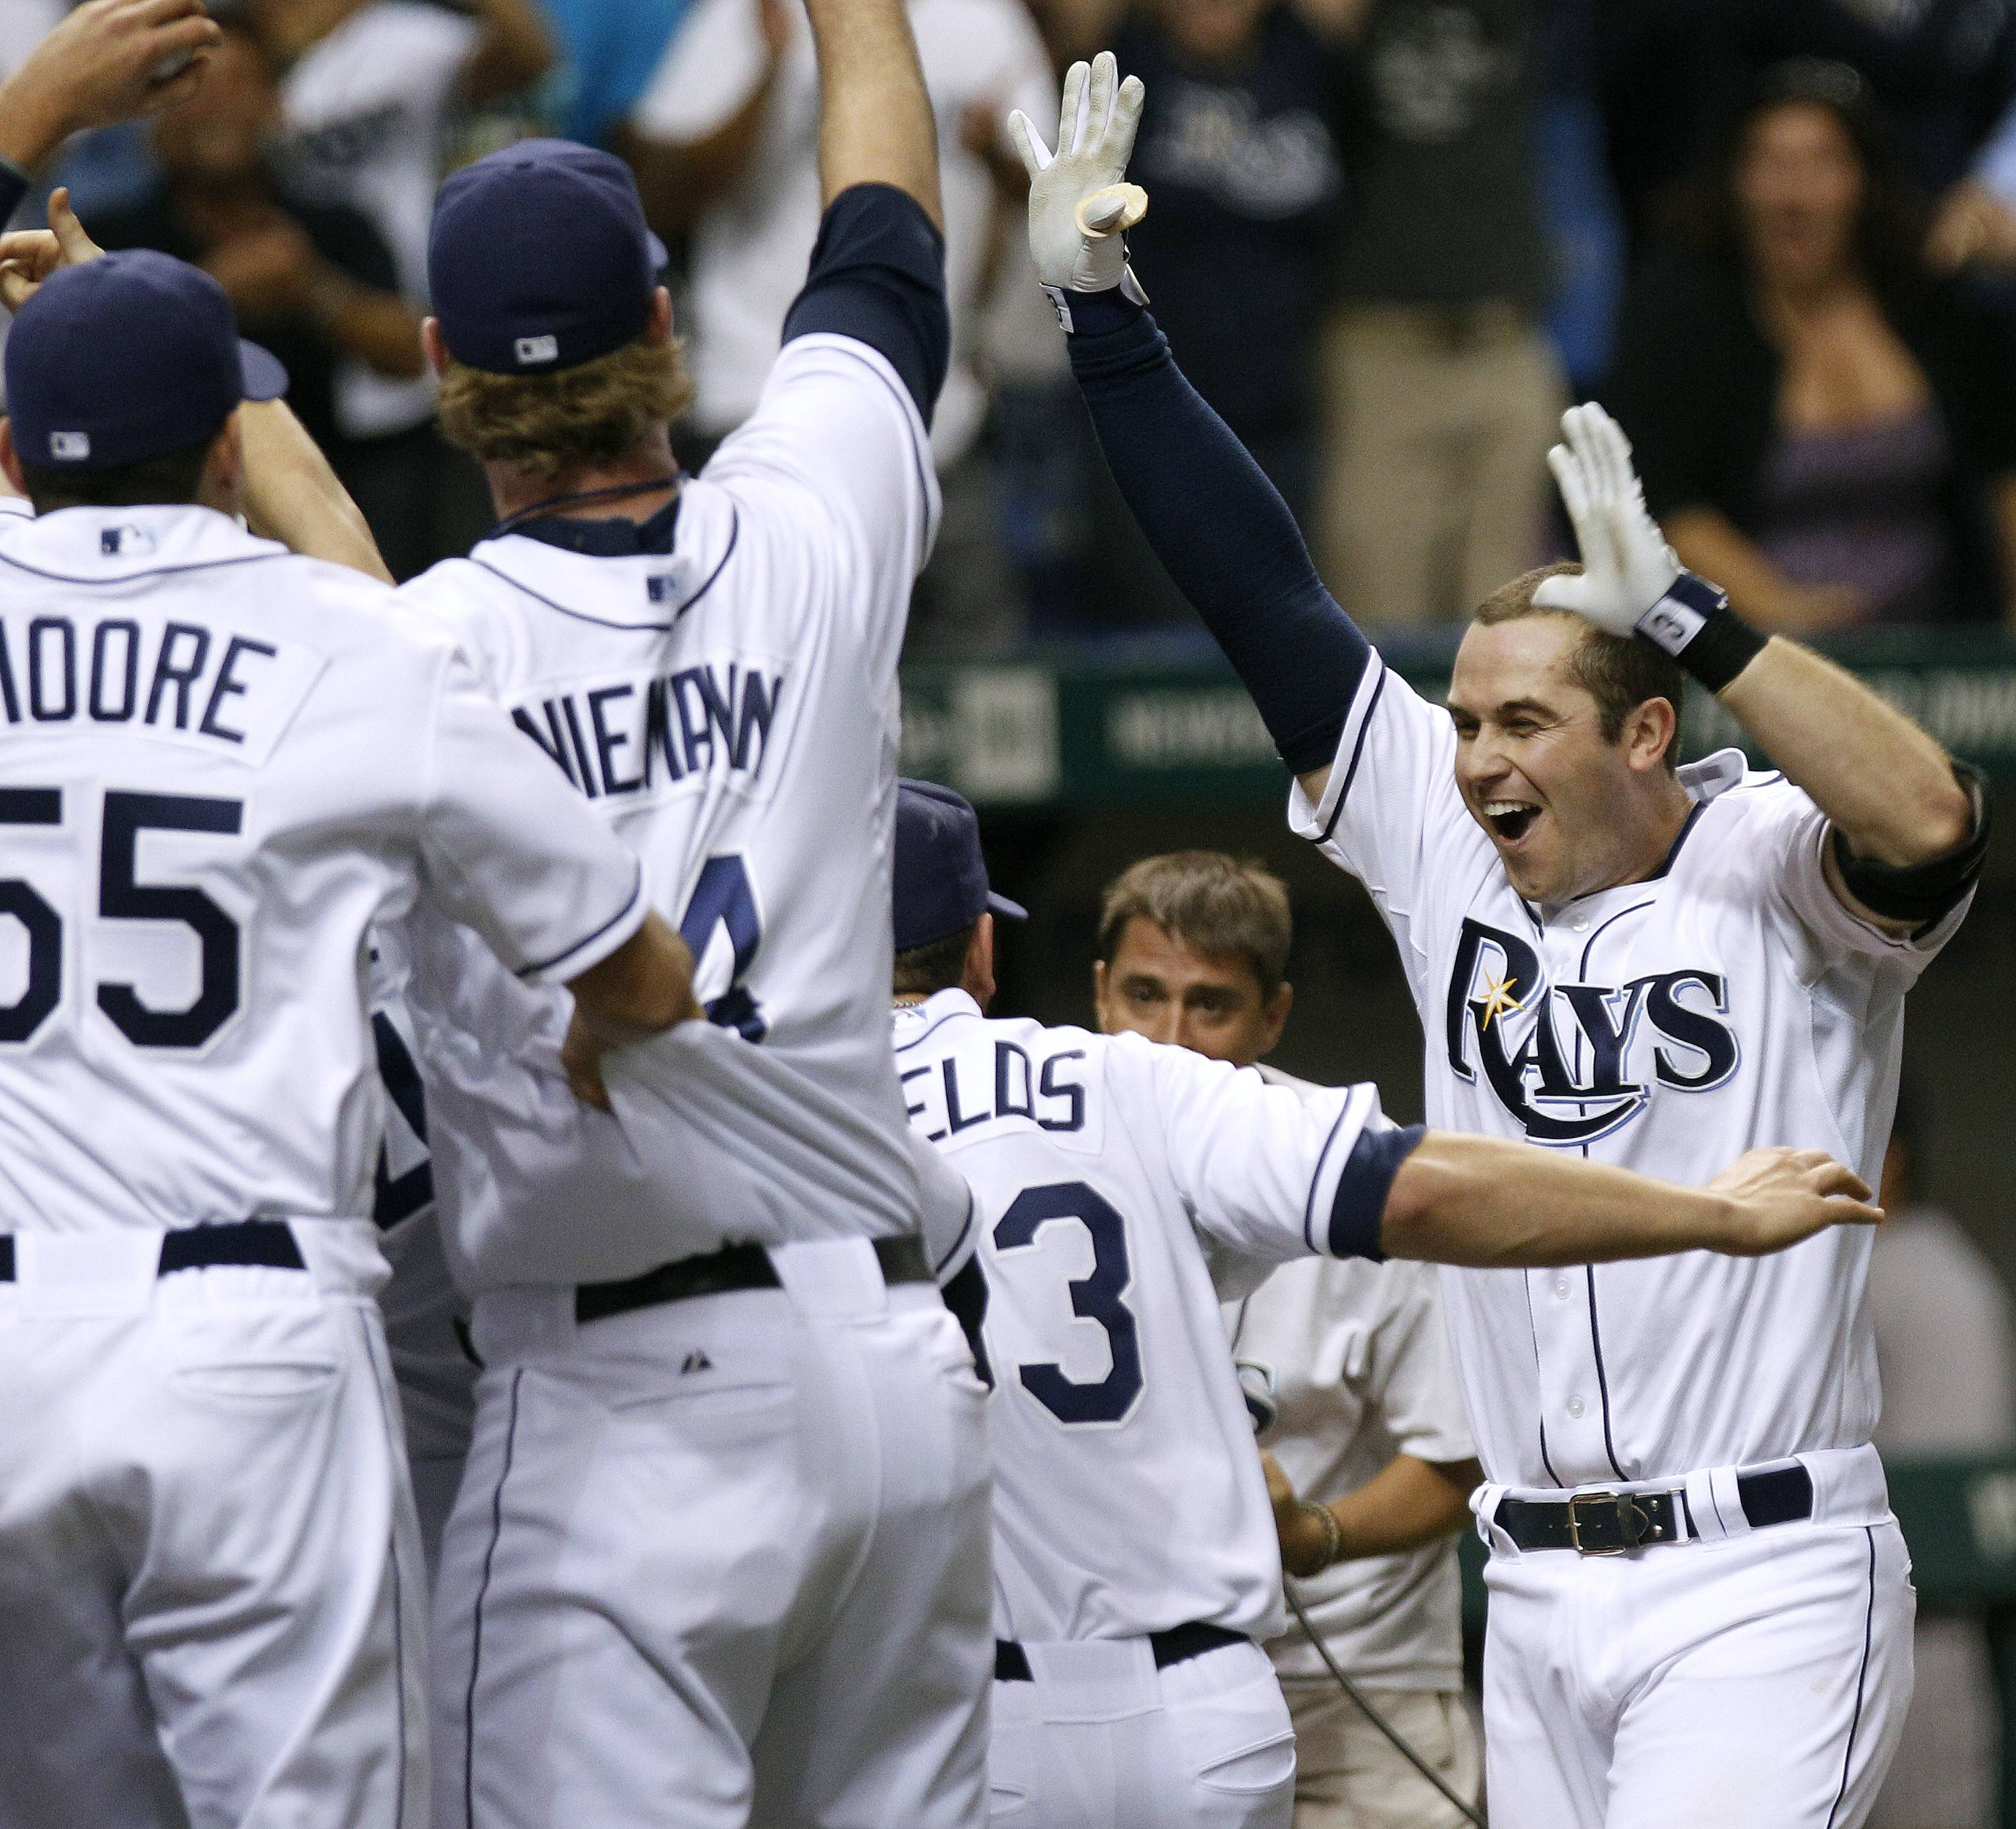 Evan Longoria, right, celebrates with teammates after his home run in the 12th inning against the New York Yankees. The Rays defeated the Yankees 8-7 and won the AL wild card.